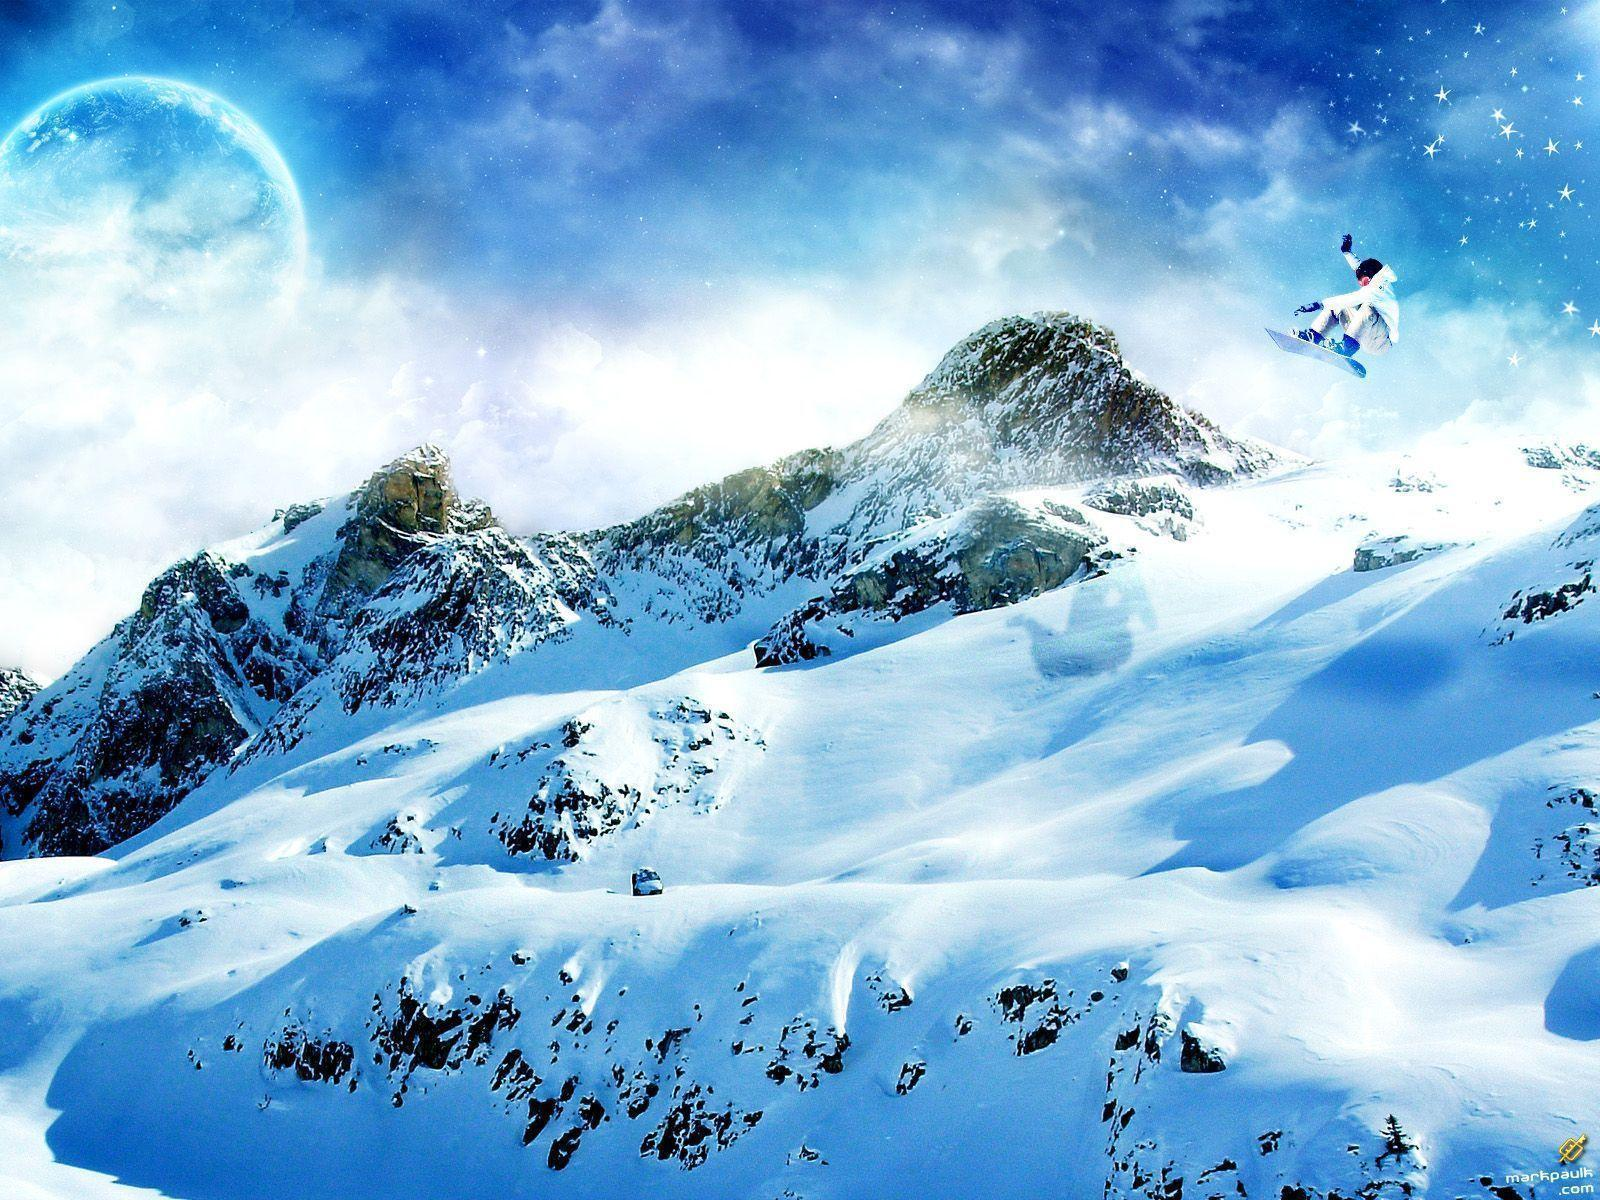 49 Snowboarding Wallpapers | Snowboarding Backgrounds